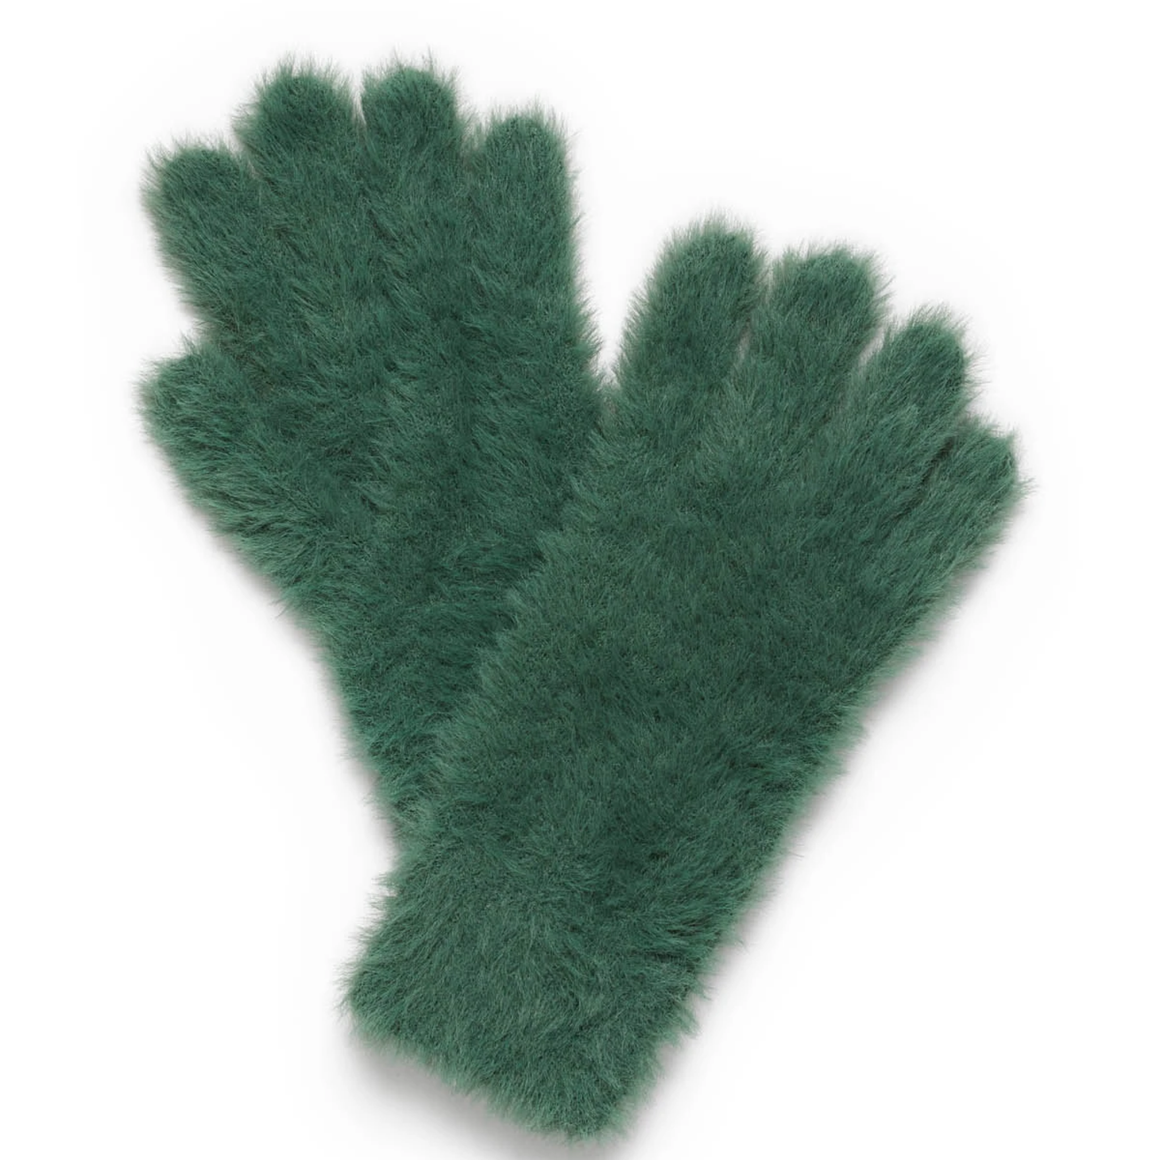 ELWOOD GLOVES - BASIL GREEN